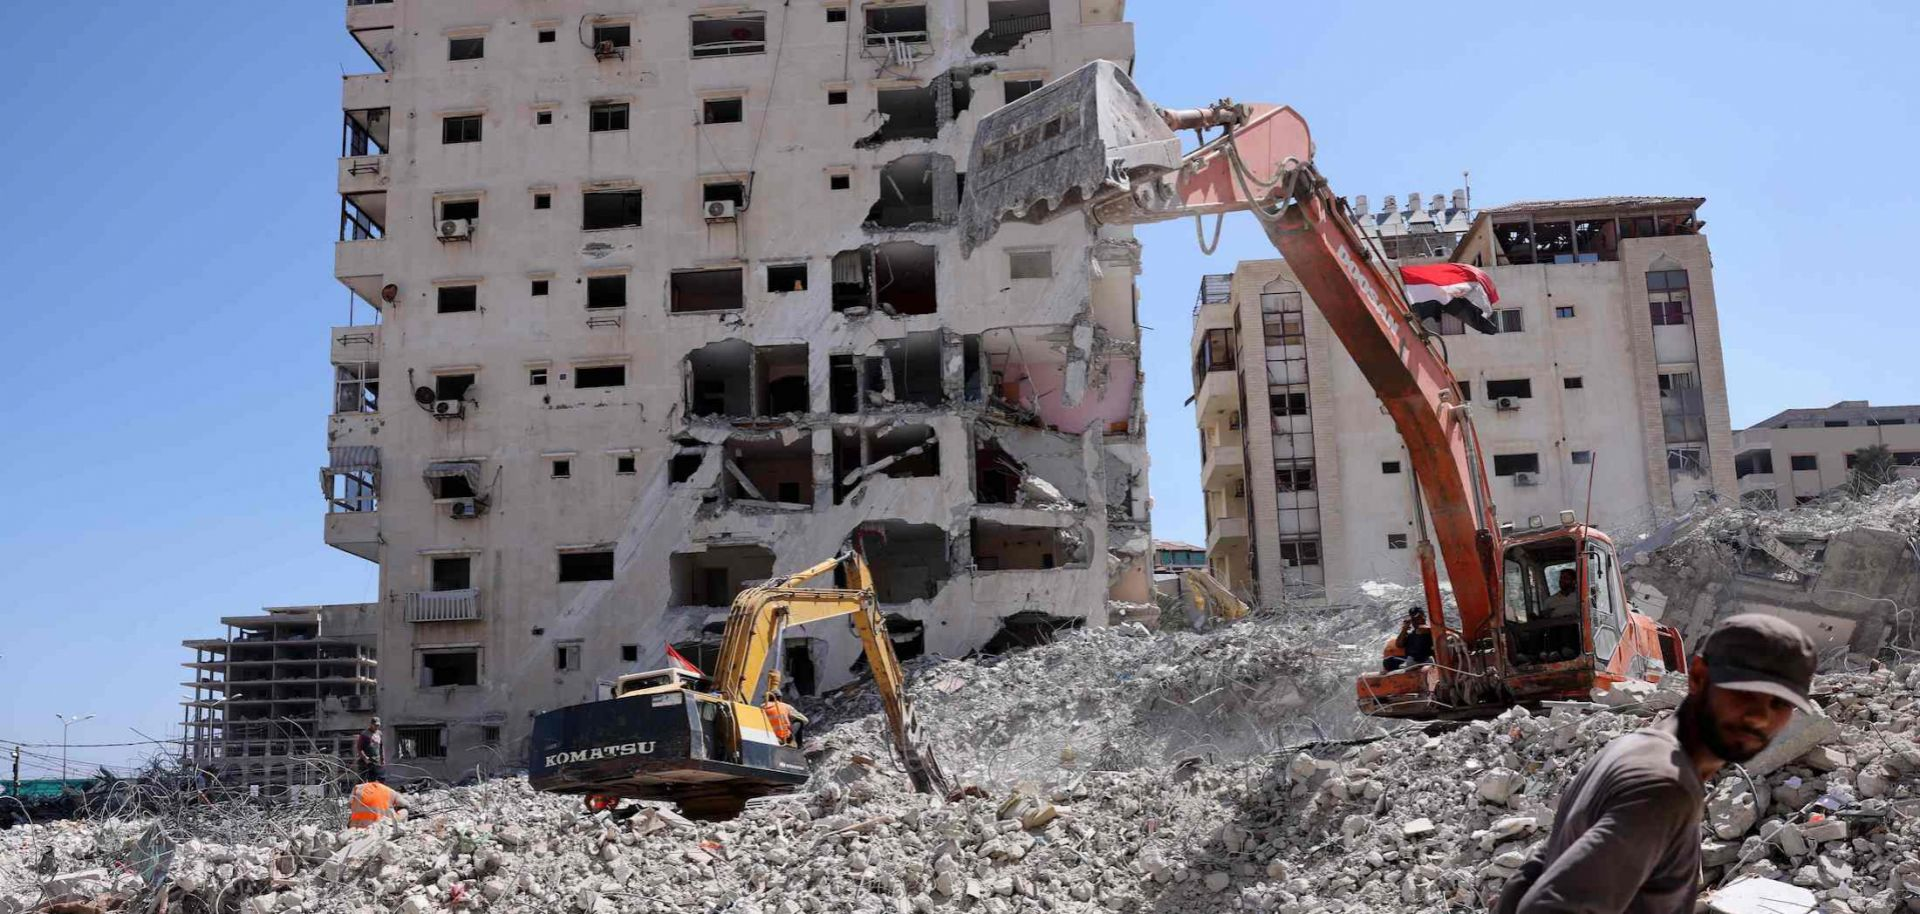 Excavators provided by Egypt help clear the rubble in Gaza on June 23, 2021, following last month's flare-up between Israel and the Palestinian militants.